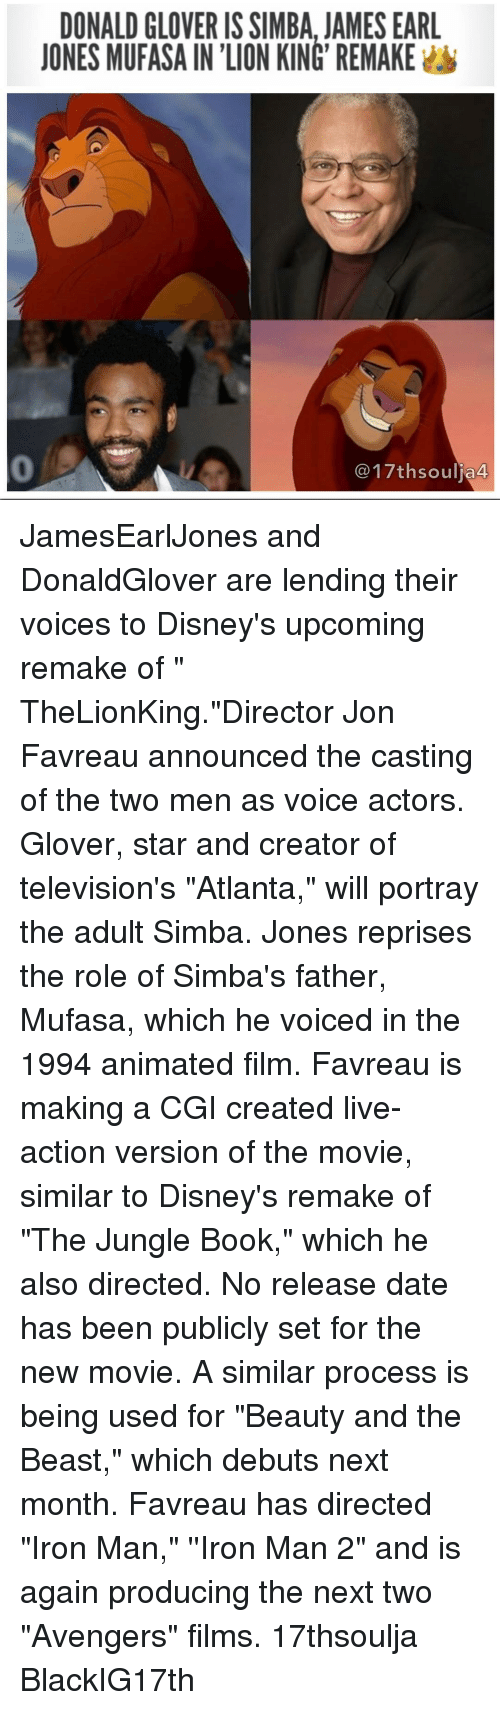 """televisions: DONALD GLOVERIS SIMBA, JAMES EARL  JONES MUFASAINION KING REMAKE  a 44 JamesEarlJones and DonaldGlover are lending their voices to Disney's upcoming remake of """" TheLionKing.""""Director Jon Favreau announced the casting of the two men as voice actors. Glover, star and creator of television's """"Atlanta,"""" will portray the adult Simba. Jones reprises the role of Simba's father, Mufasa, which he voiced in the 1994 animated film. Favreau is making a CGI created live-action version of the movie, similar to Disney's remake of """"The Jungle Book,"""" which he also directed. No release date has been publicly set for the new movie. A similar process is being used for """"Beauty and the Beast,"""" which debuts next month. Favreau has directed """"Iron Man,"""" ''Iron Man 2"""" and is again producing the next two """"Avengers"""" films. 17thsoulja BlackIG17th"""